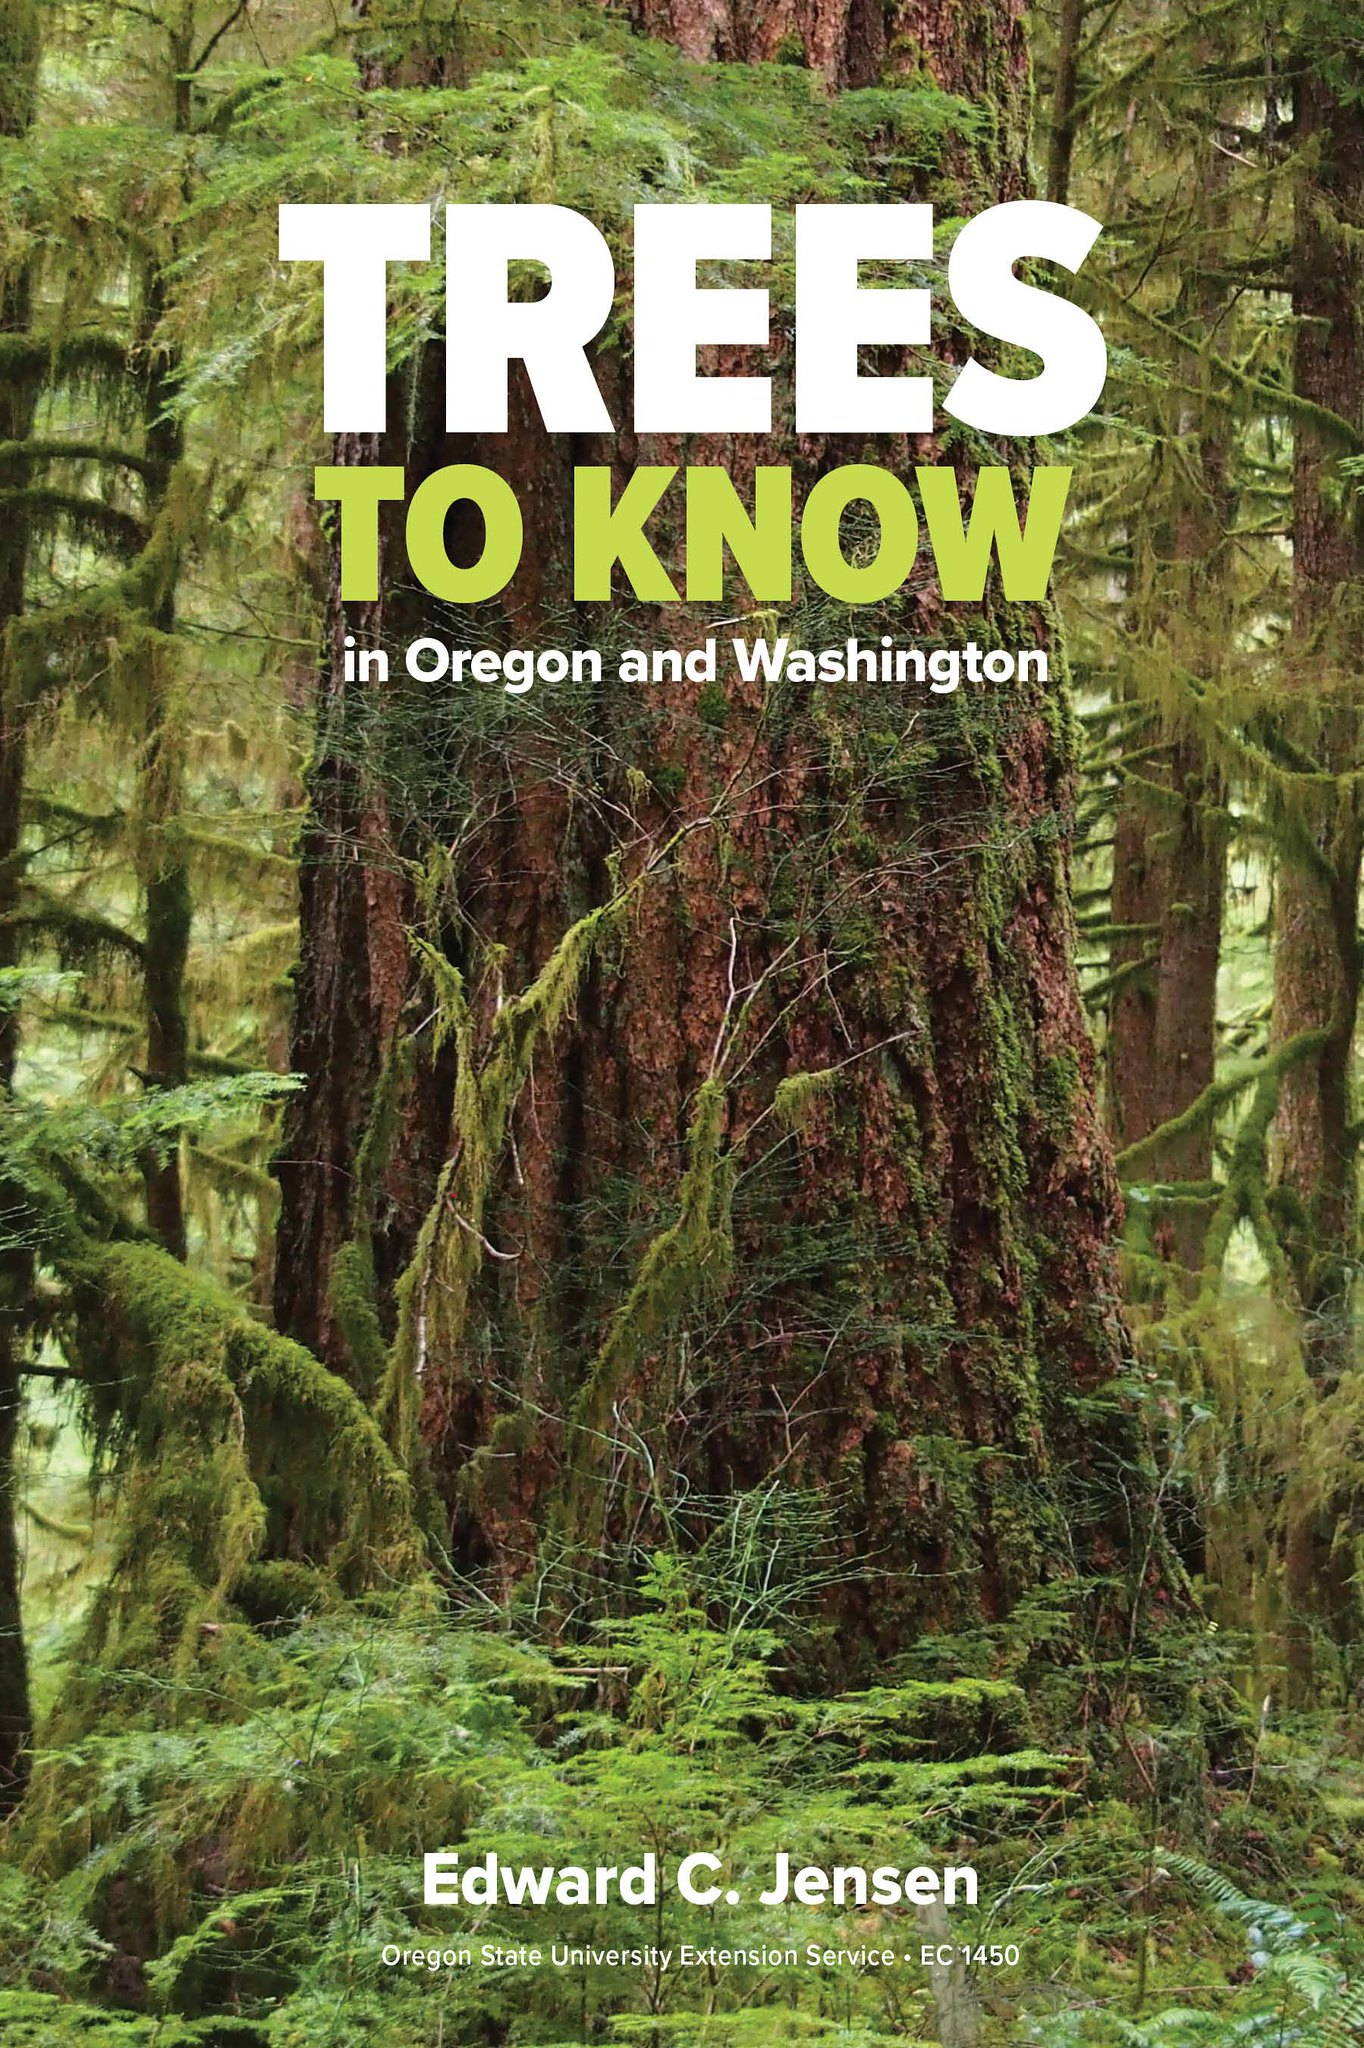 'Trees to Know in Oregon and Washington' turns 70 with new edition